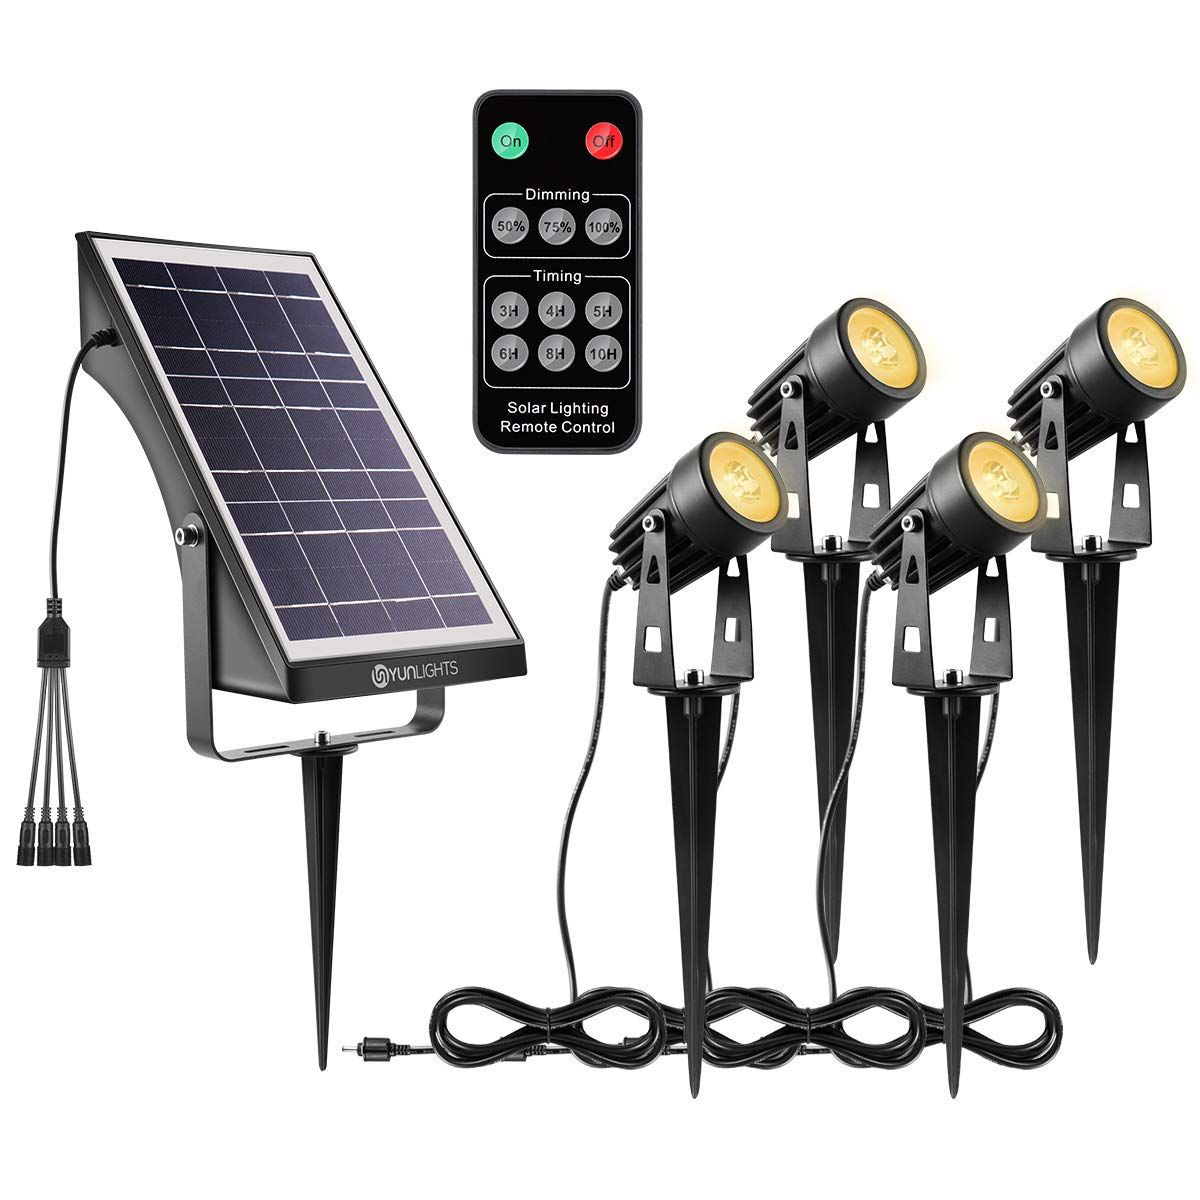 remote control outside light on Yunlights Solar Landscape Lights Low Voltage Outdoor Solar Spotlight Wireless Remote Contr Outdoor Landscape Lighting Solar Landscape Lighting Solar Landscape